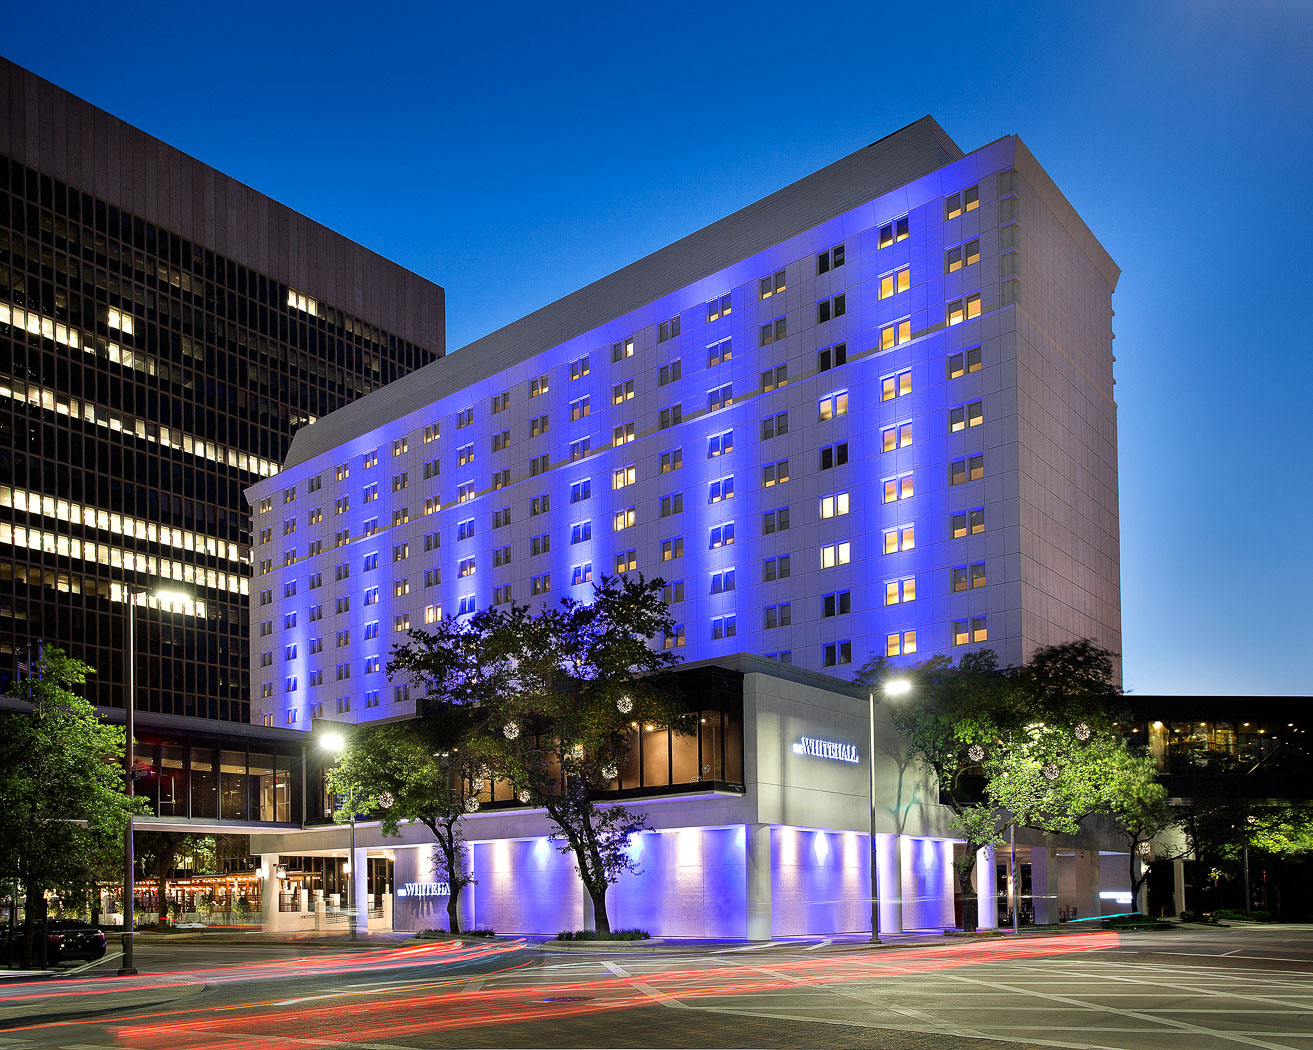 The Whitehall Hotel Downtown Houston Hotels Official Hotel Website - Map of houston hotels downtown